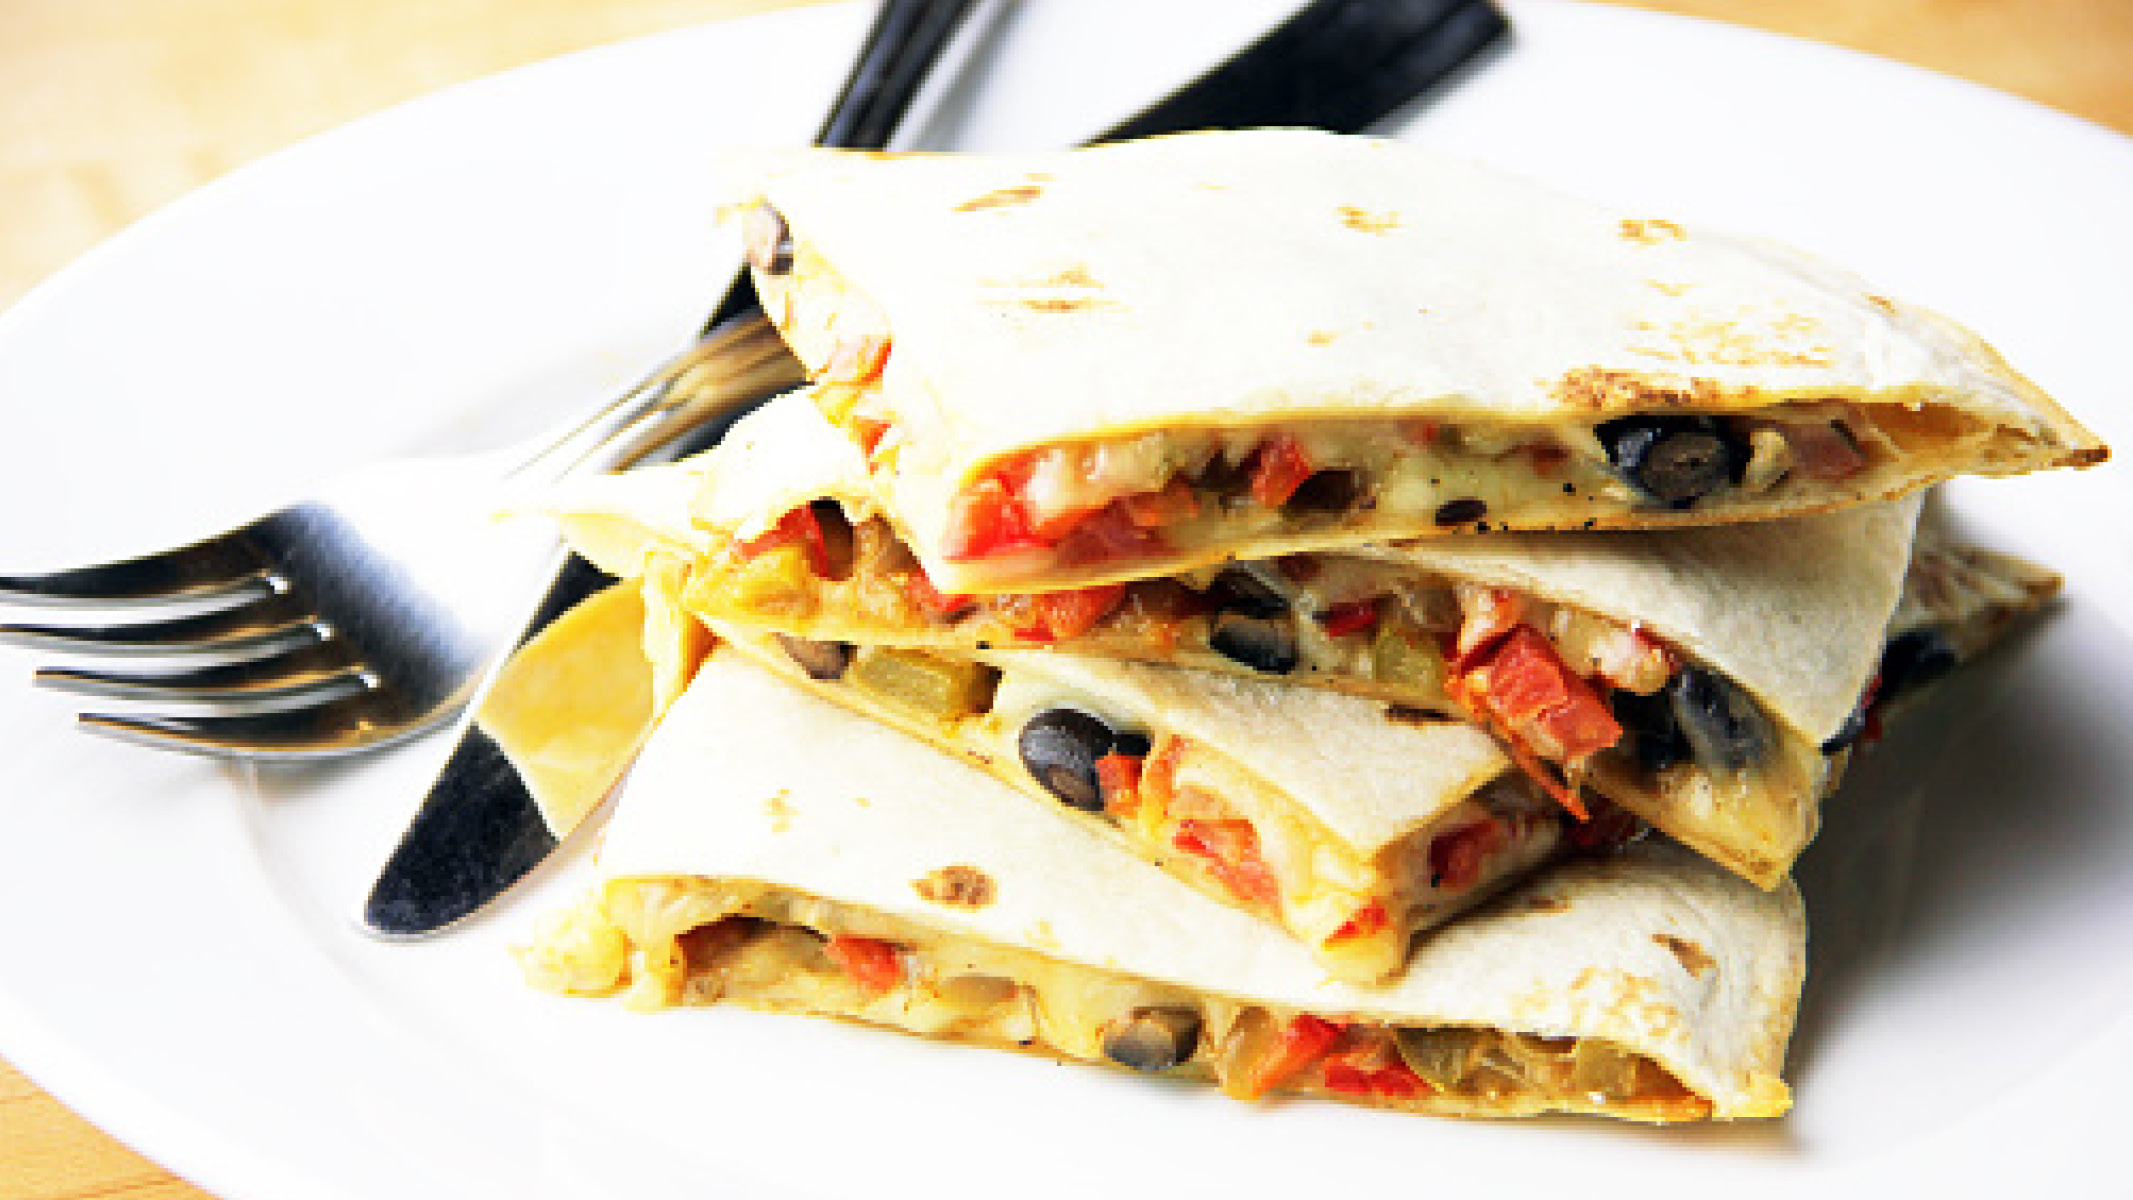 Black Bean Quesadilla on white plate with silverware - Sanford fit